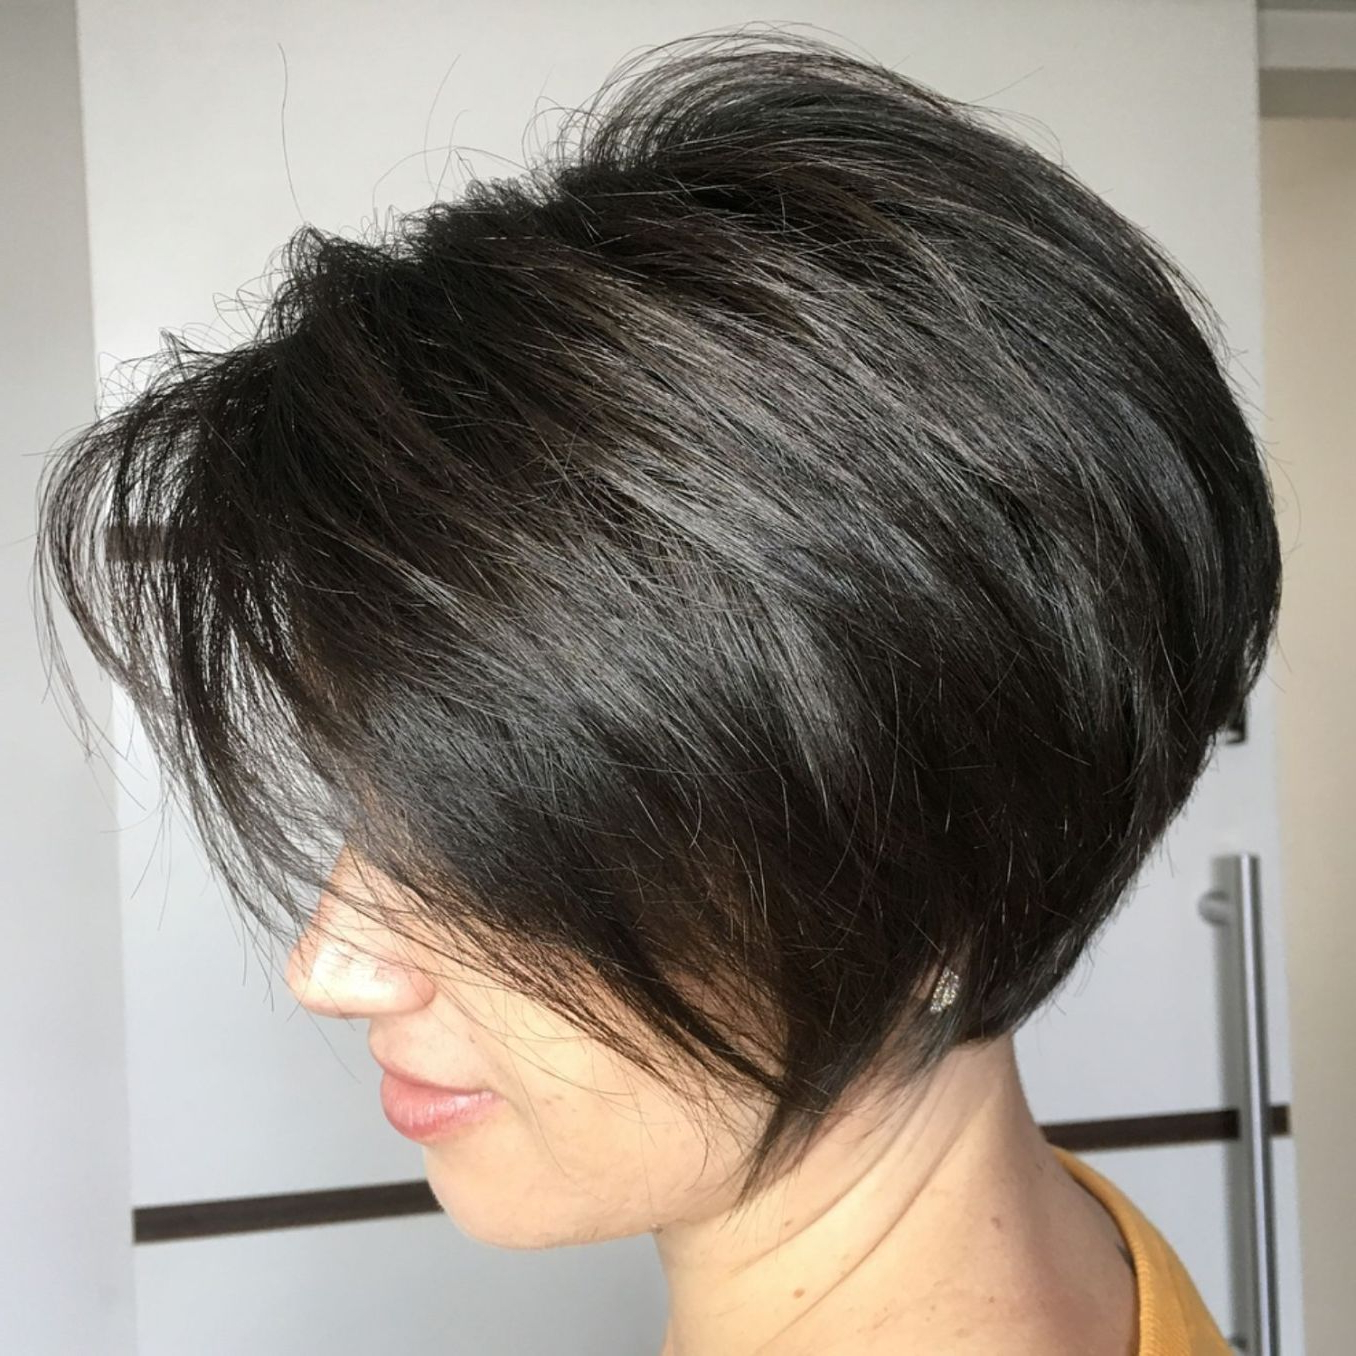 60 Classy Short Haircuts And Hairstyles For Thick Hair In 2018 Inside Long Feathered Espresso Brown Pixie Hairstyles (View 8 of 20)